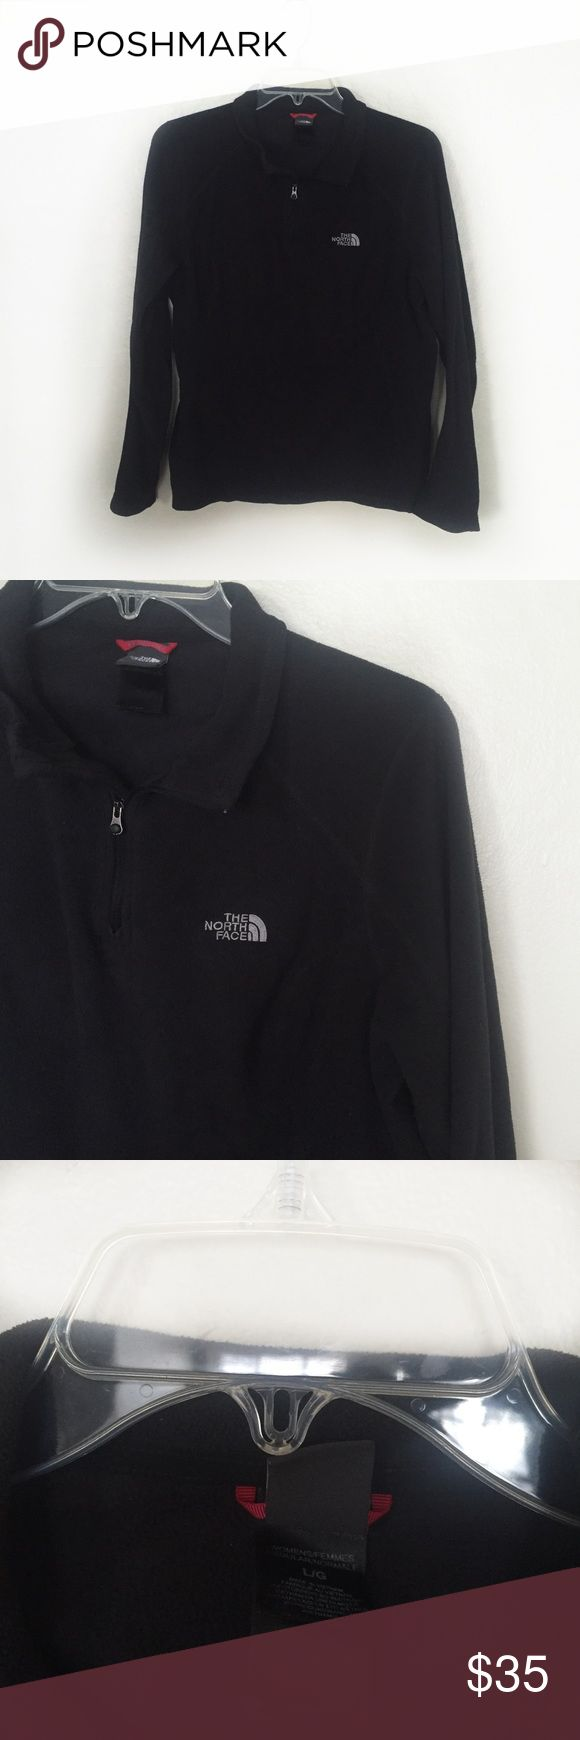 The North Face Fleece Jacket - Black - Size L North Face Women's Sweater  - Quarter zip jacket by North Face - Women's size large  - Excellent condition with no flaws - Color: Solid black - Offers considered! The North Face Jackets & Coats Utility Jackets